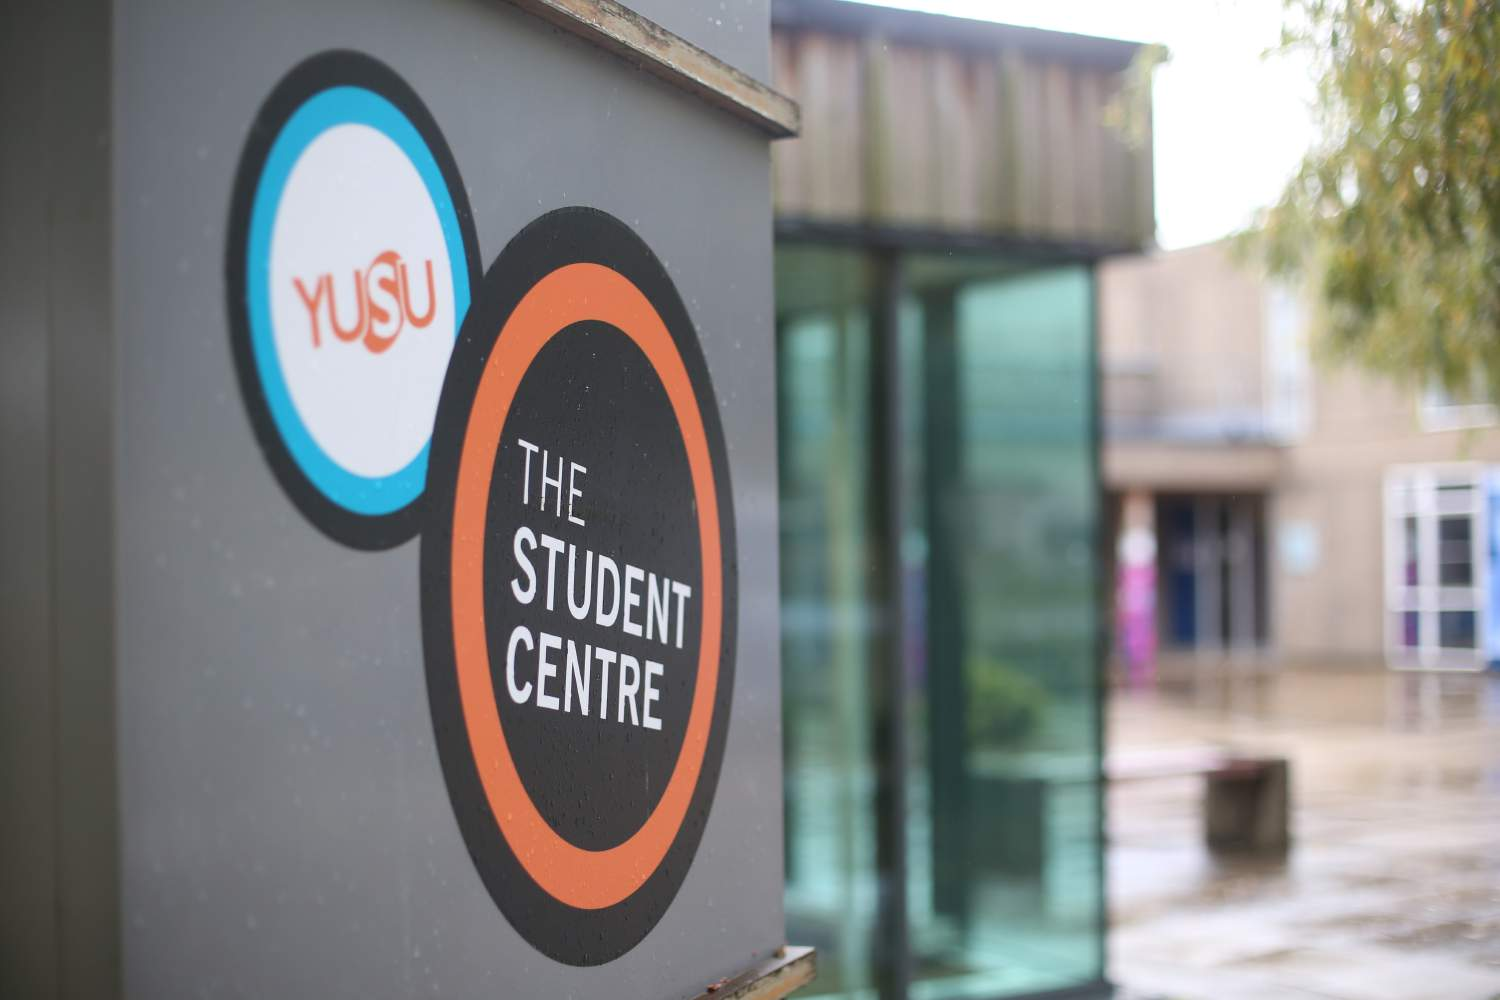 YUSU sends open letter to Vice Chancellor expressing concerns